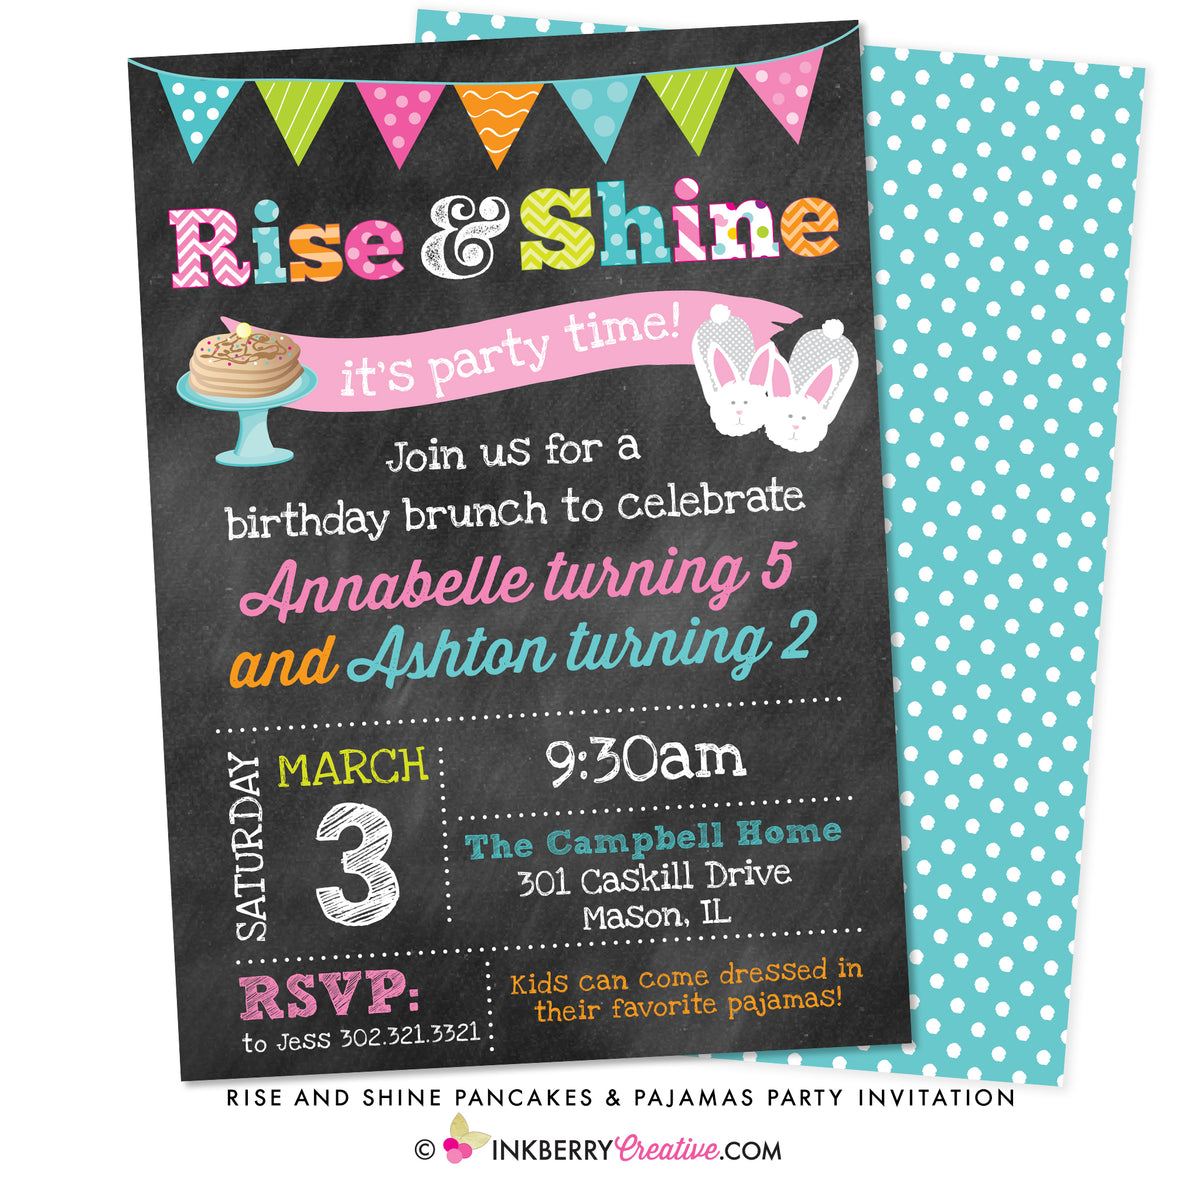 New Birthday Party Invitations In The Shop